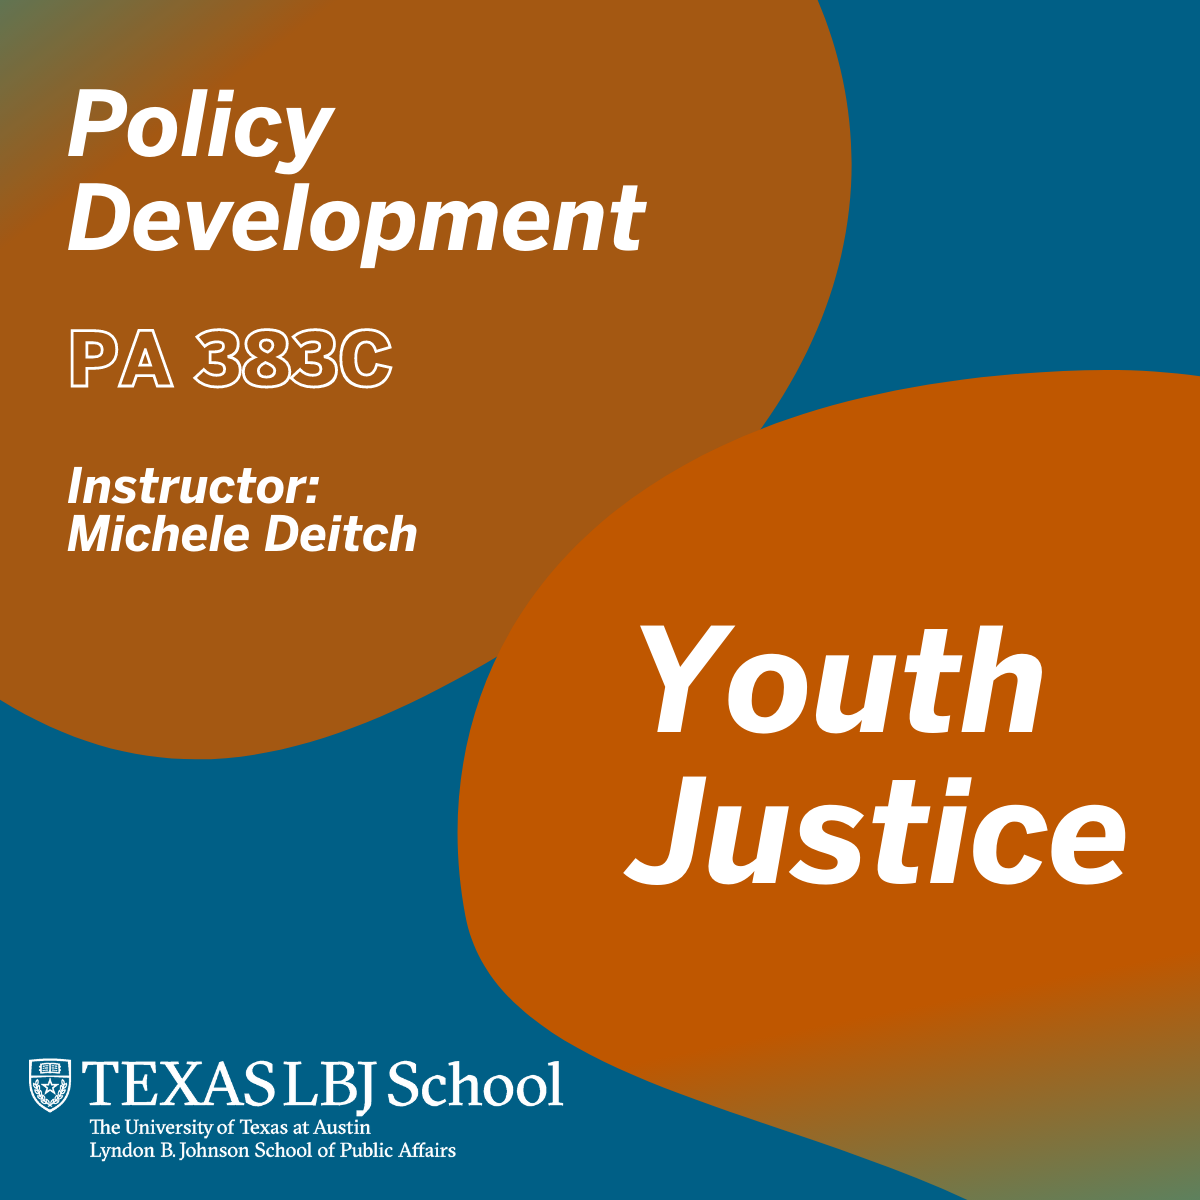 Fall 2021 class: Policy Development: Youth Justice